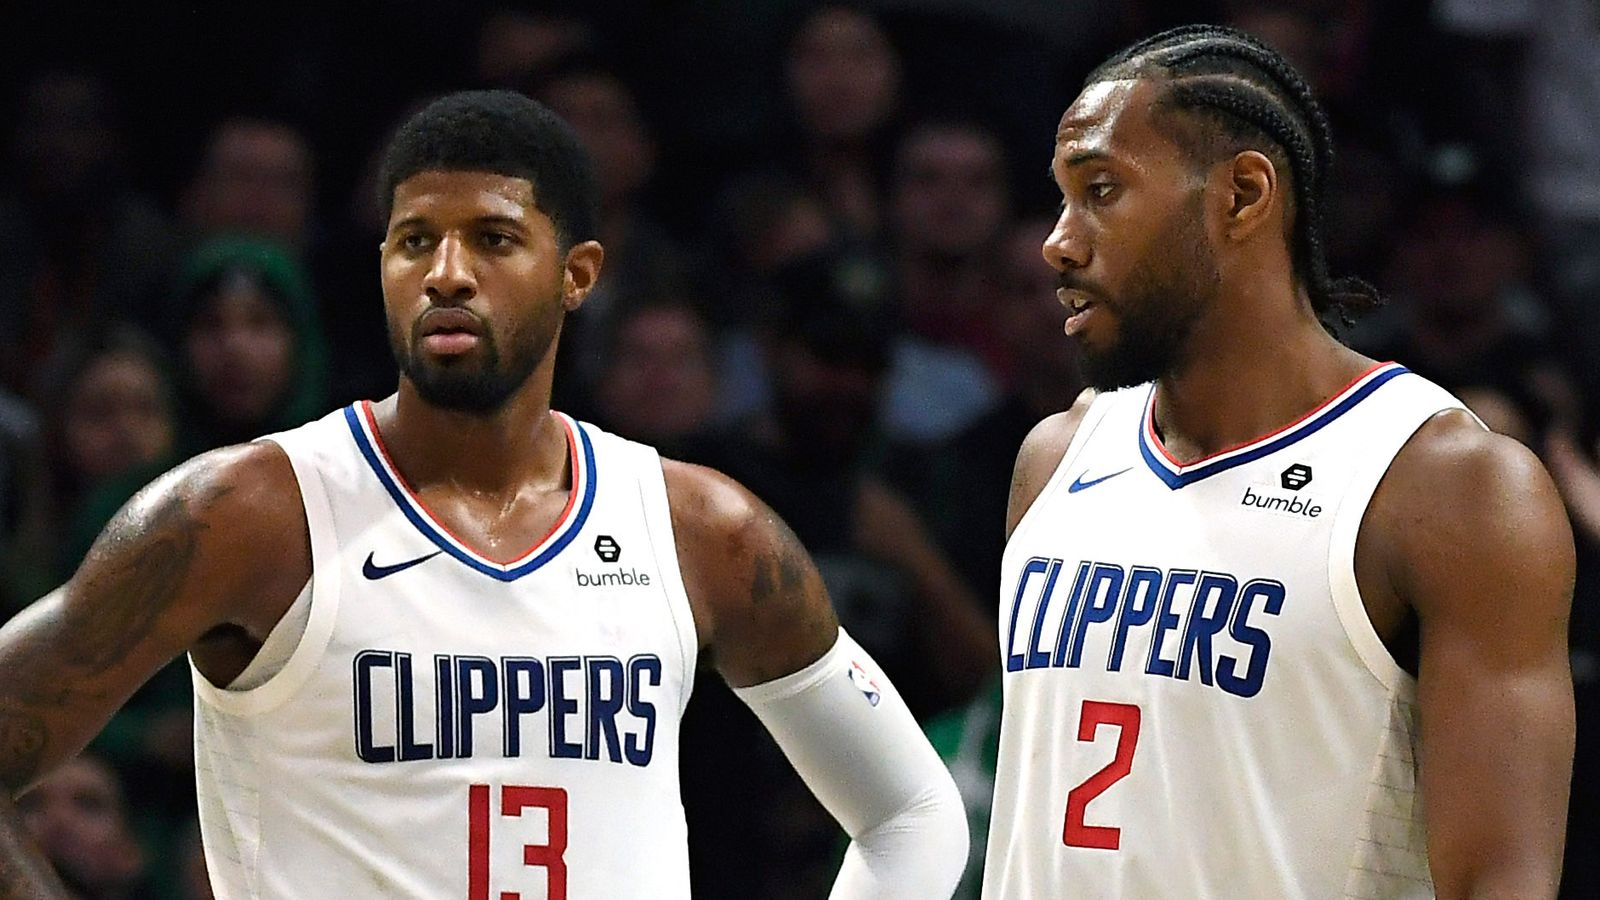 LA Clippers and Denver Nuggets at full strength for Western Conference heavyweight duel